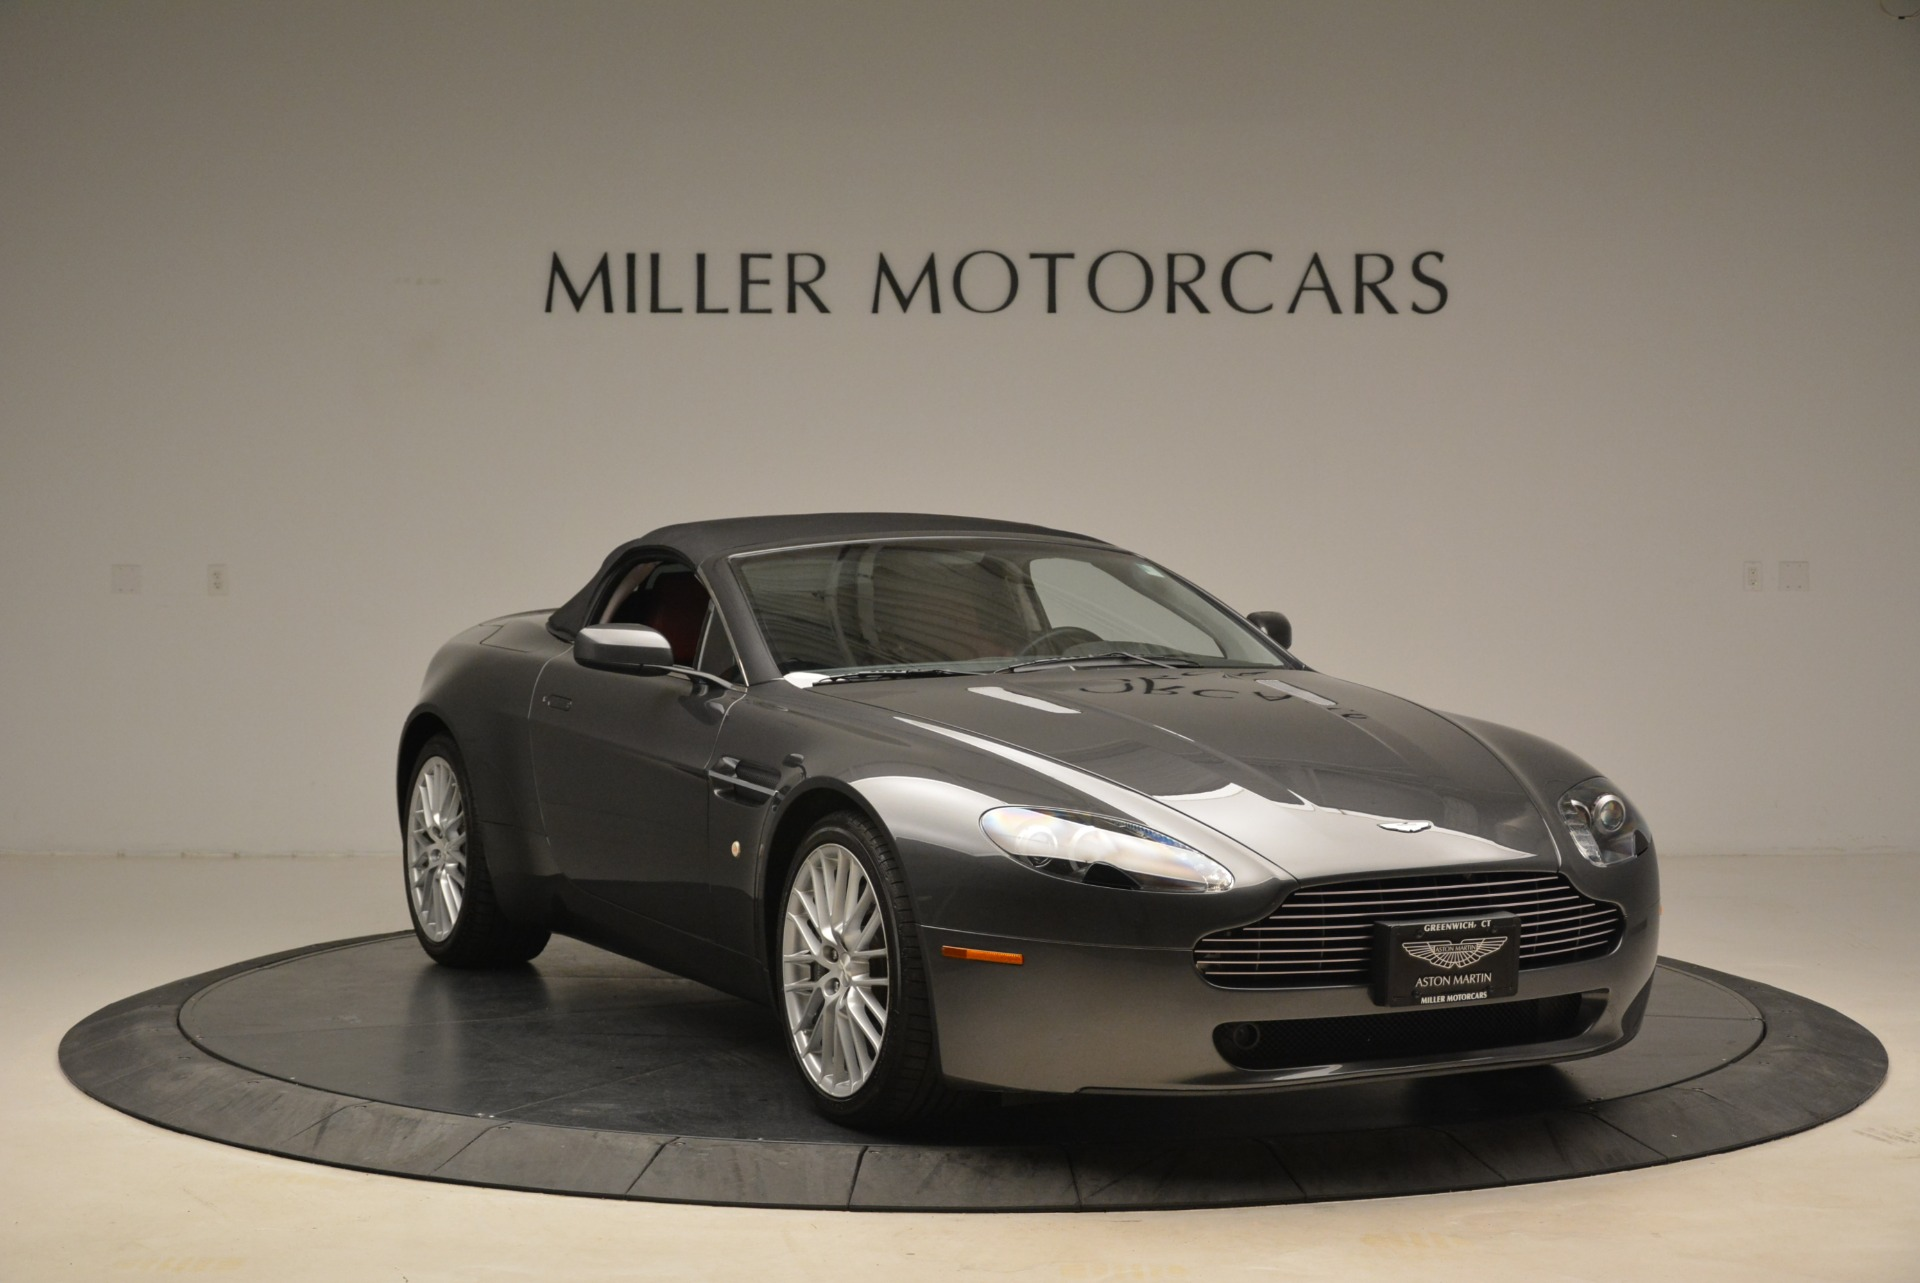 Used 2009 Aston Martin V8 Vantage Roadster For Sale In Greenwich, CT 2123_p23